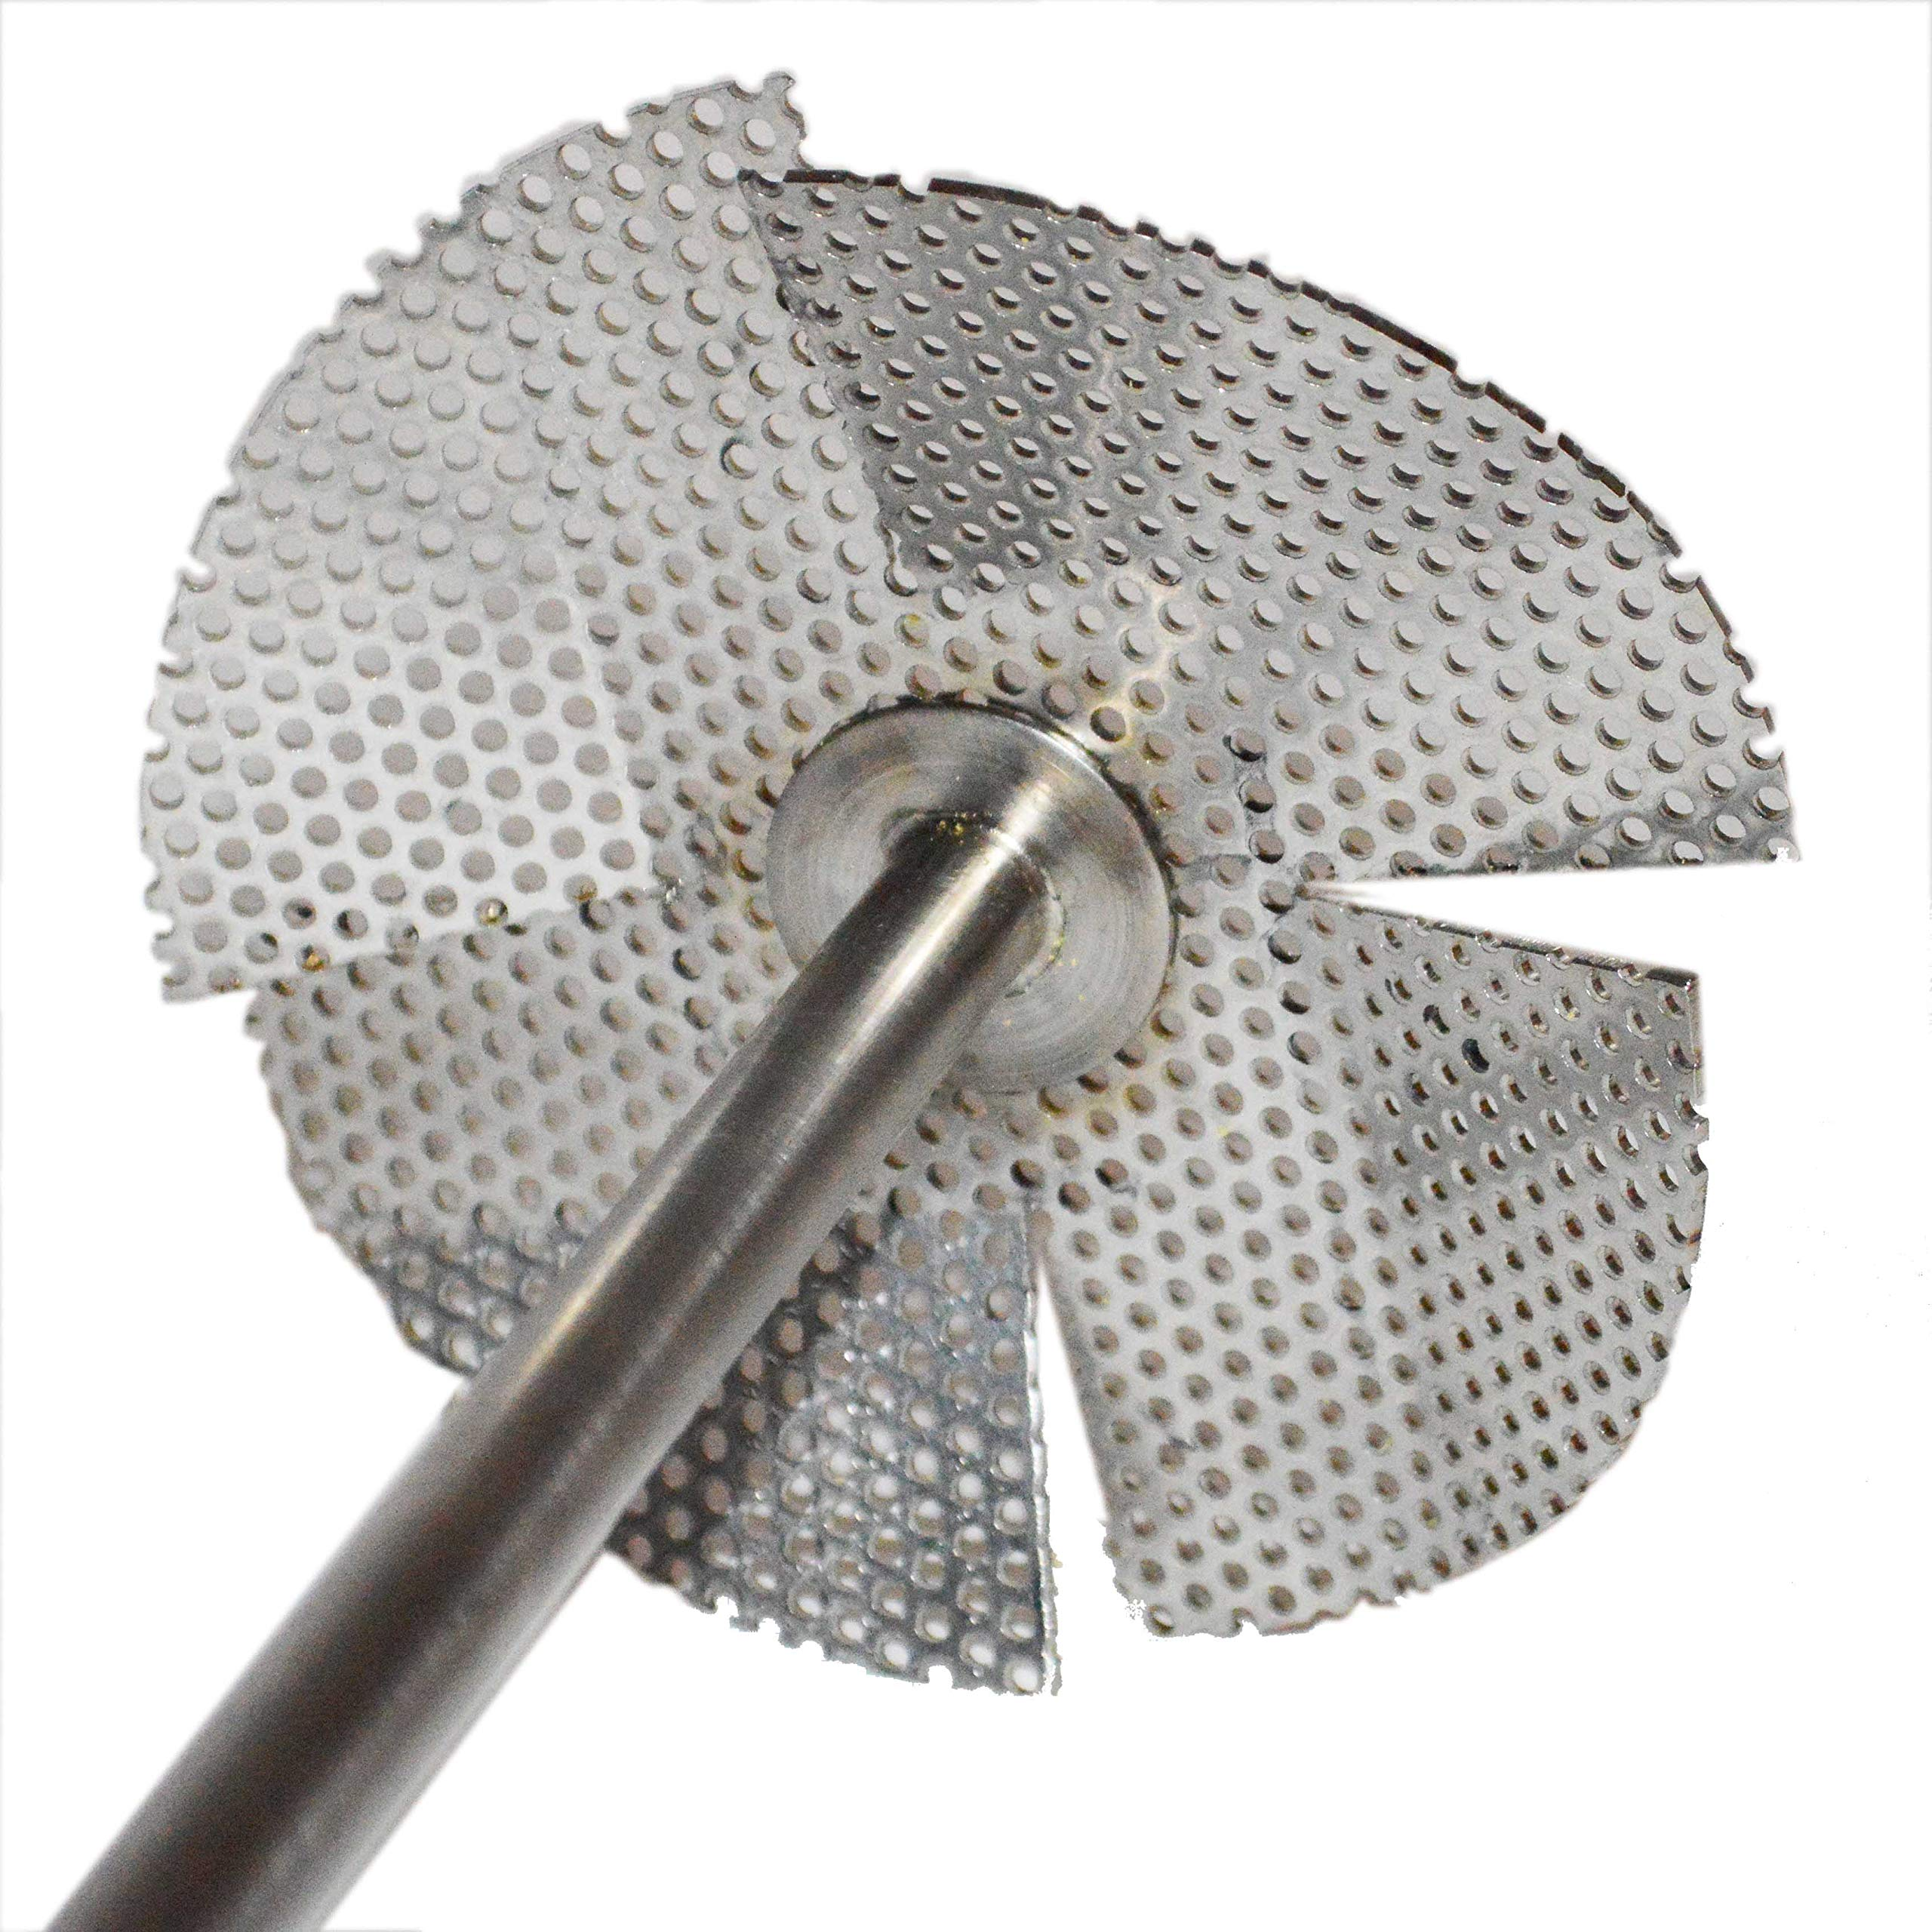 Jaybird Stainless Steel''Whirlpool Master'' - LONG Version - Beer Brewing Paddle